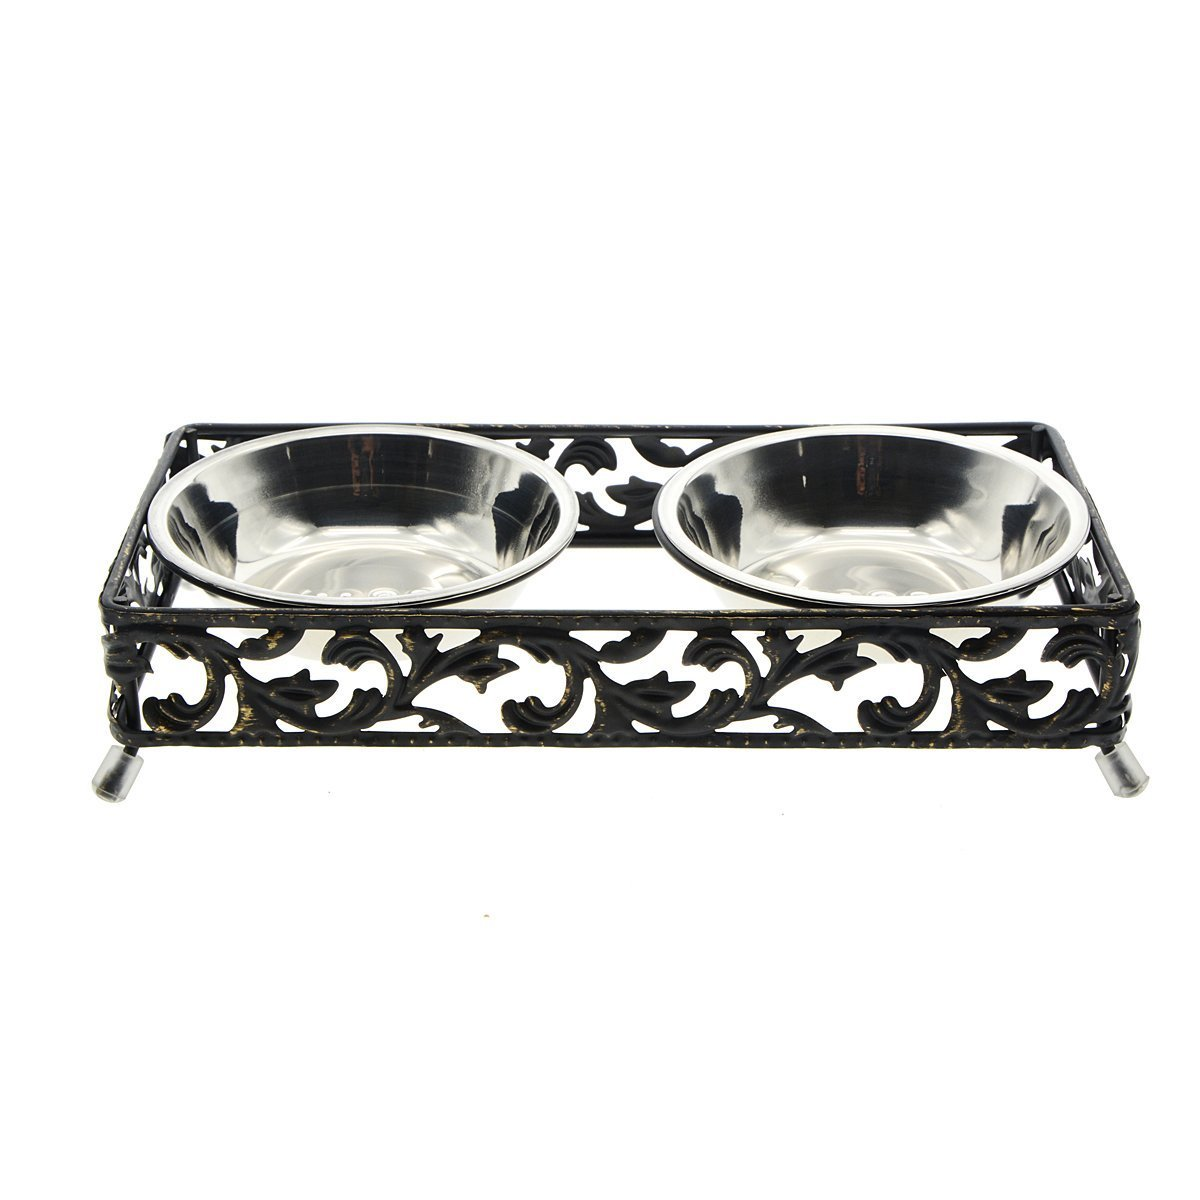 Global Brands Online Stainless Steel Pet Bowl for Food and Water Bowls Pet Feeders Double Bowls SetAntique Metal Stand